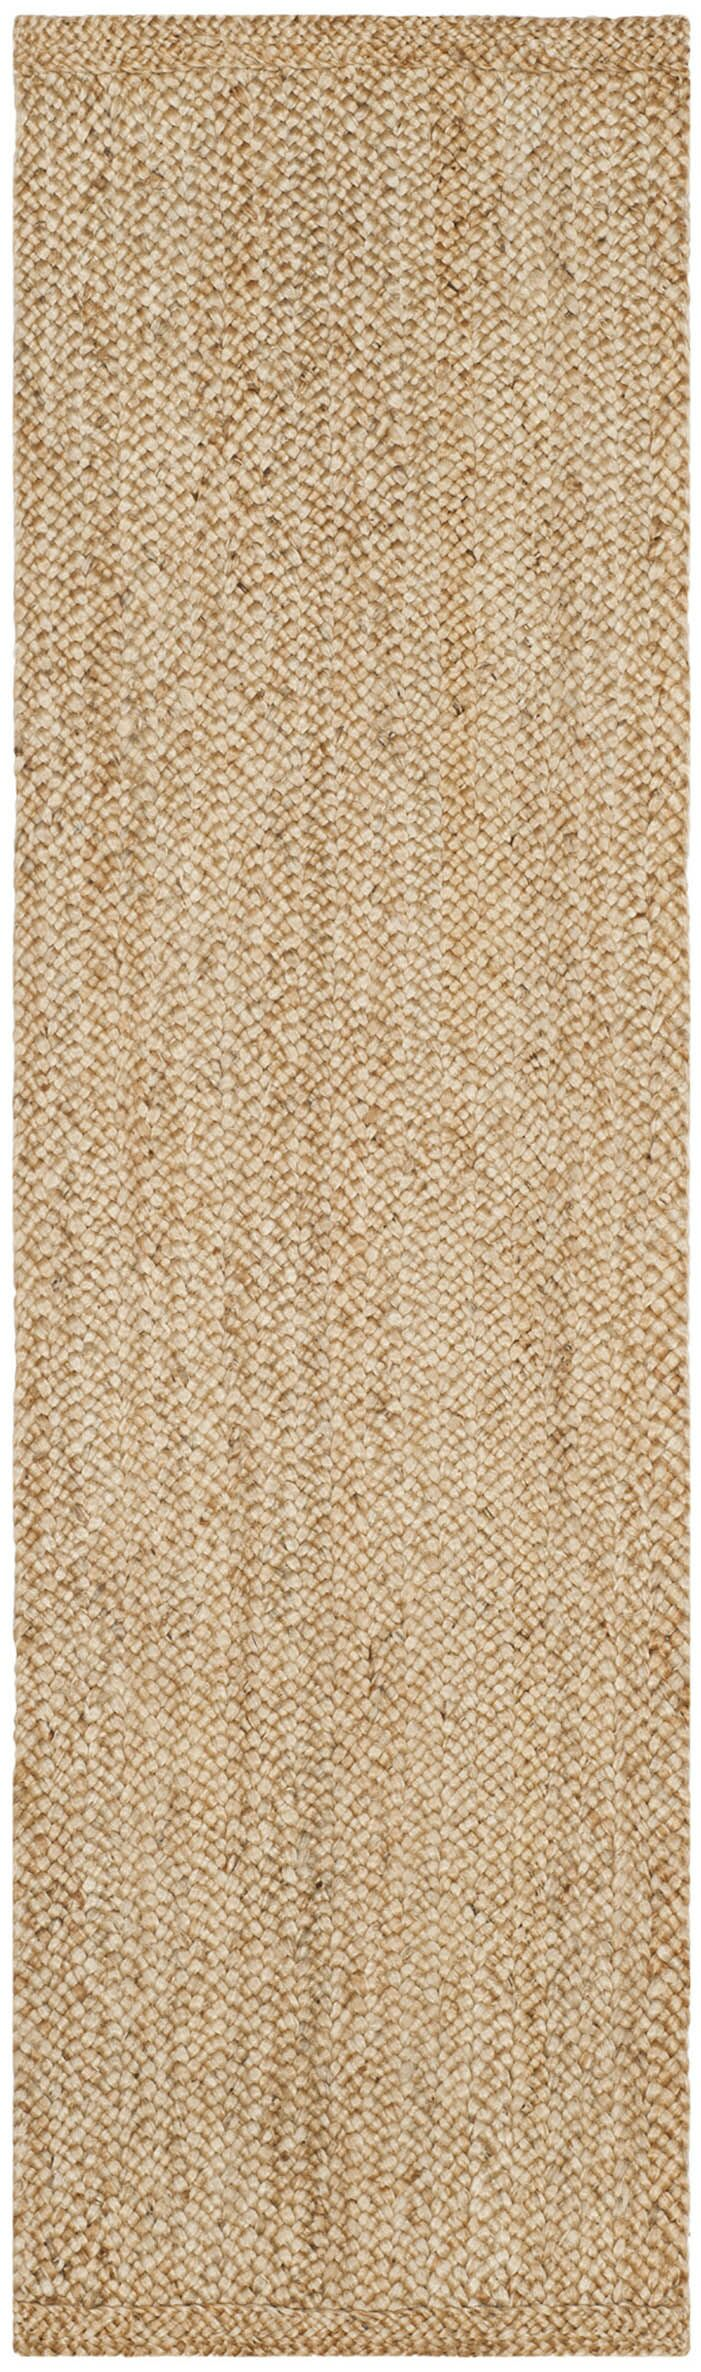 Greene Hand-Woven Natural Area Rug Rug Size: Runner 2'6